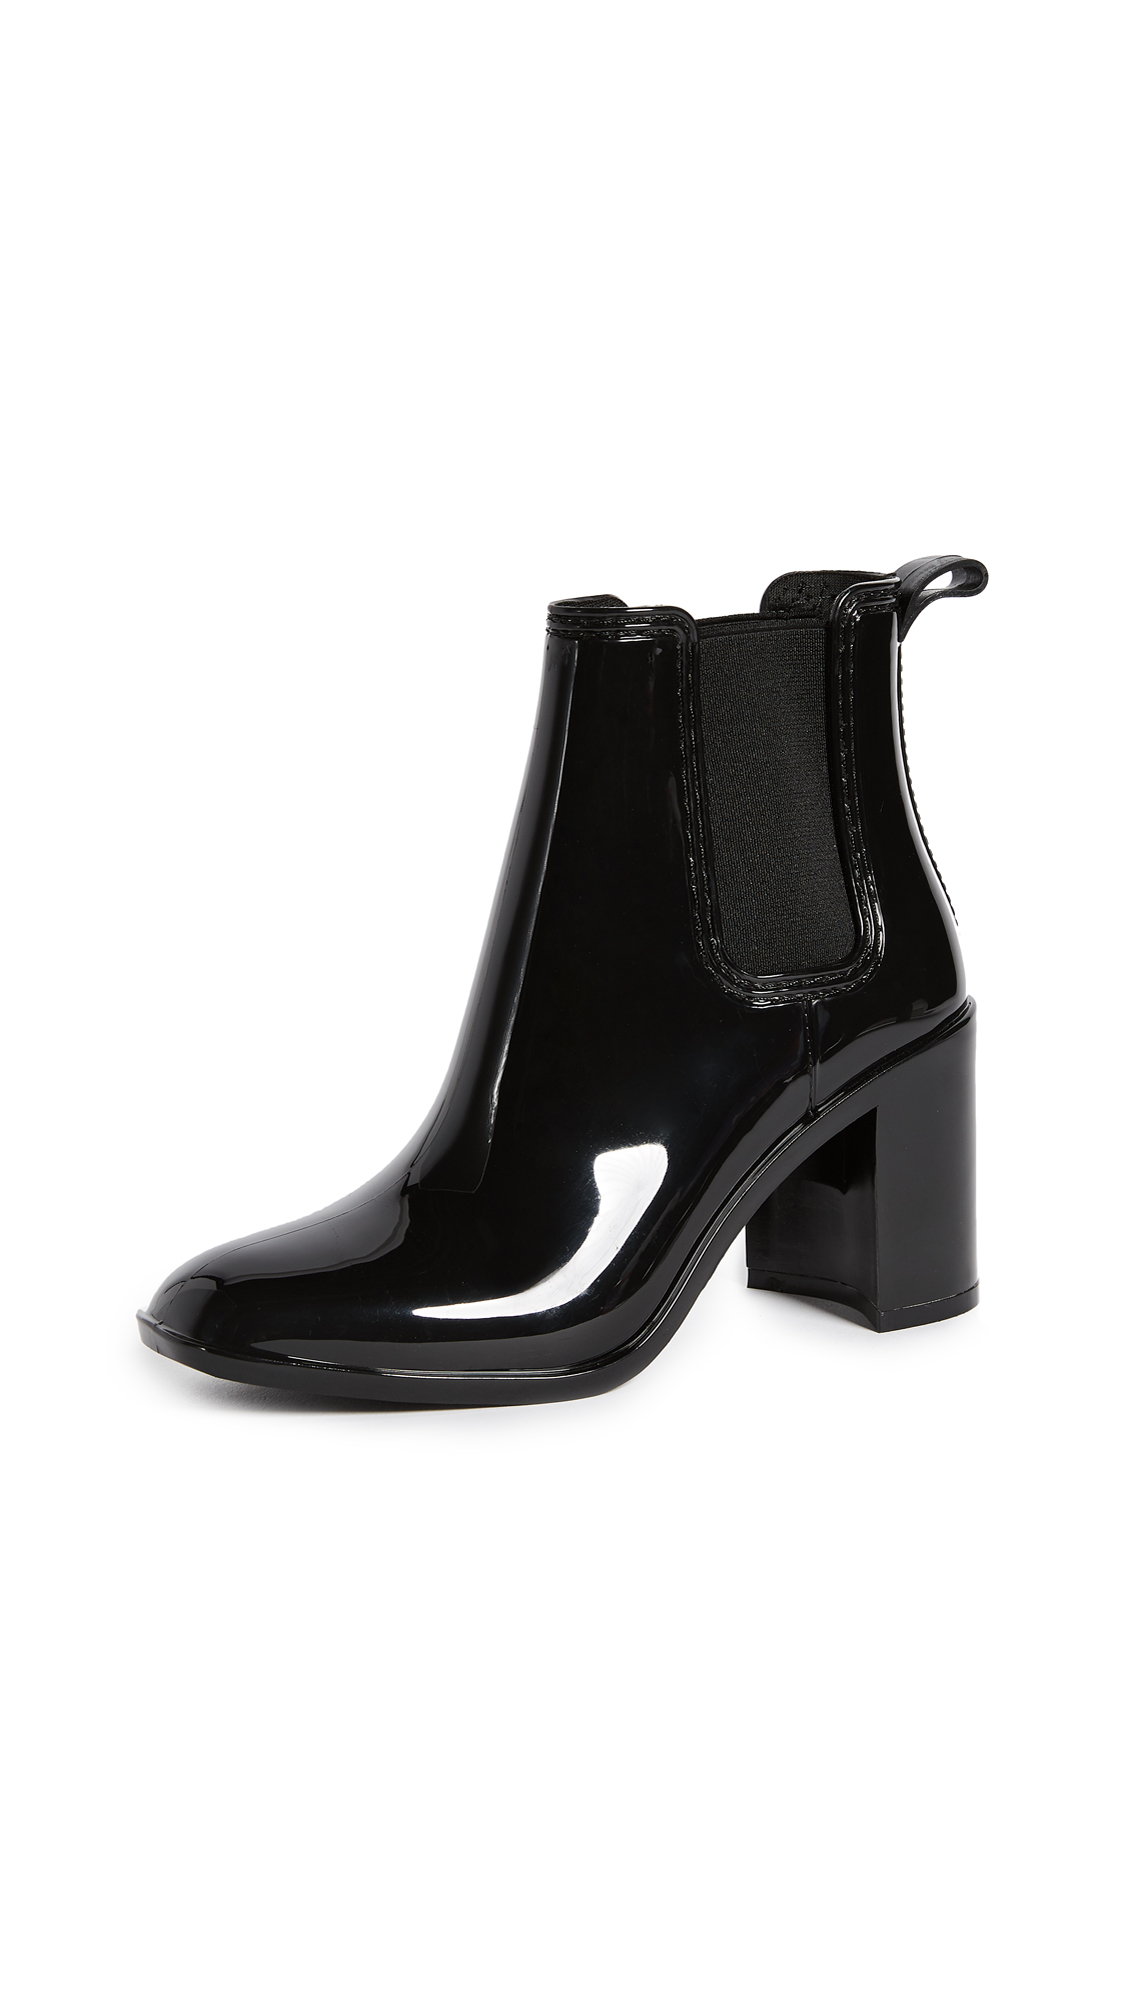 Jeffrey Campbell Hurricane Rain Booties - Black